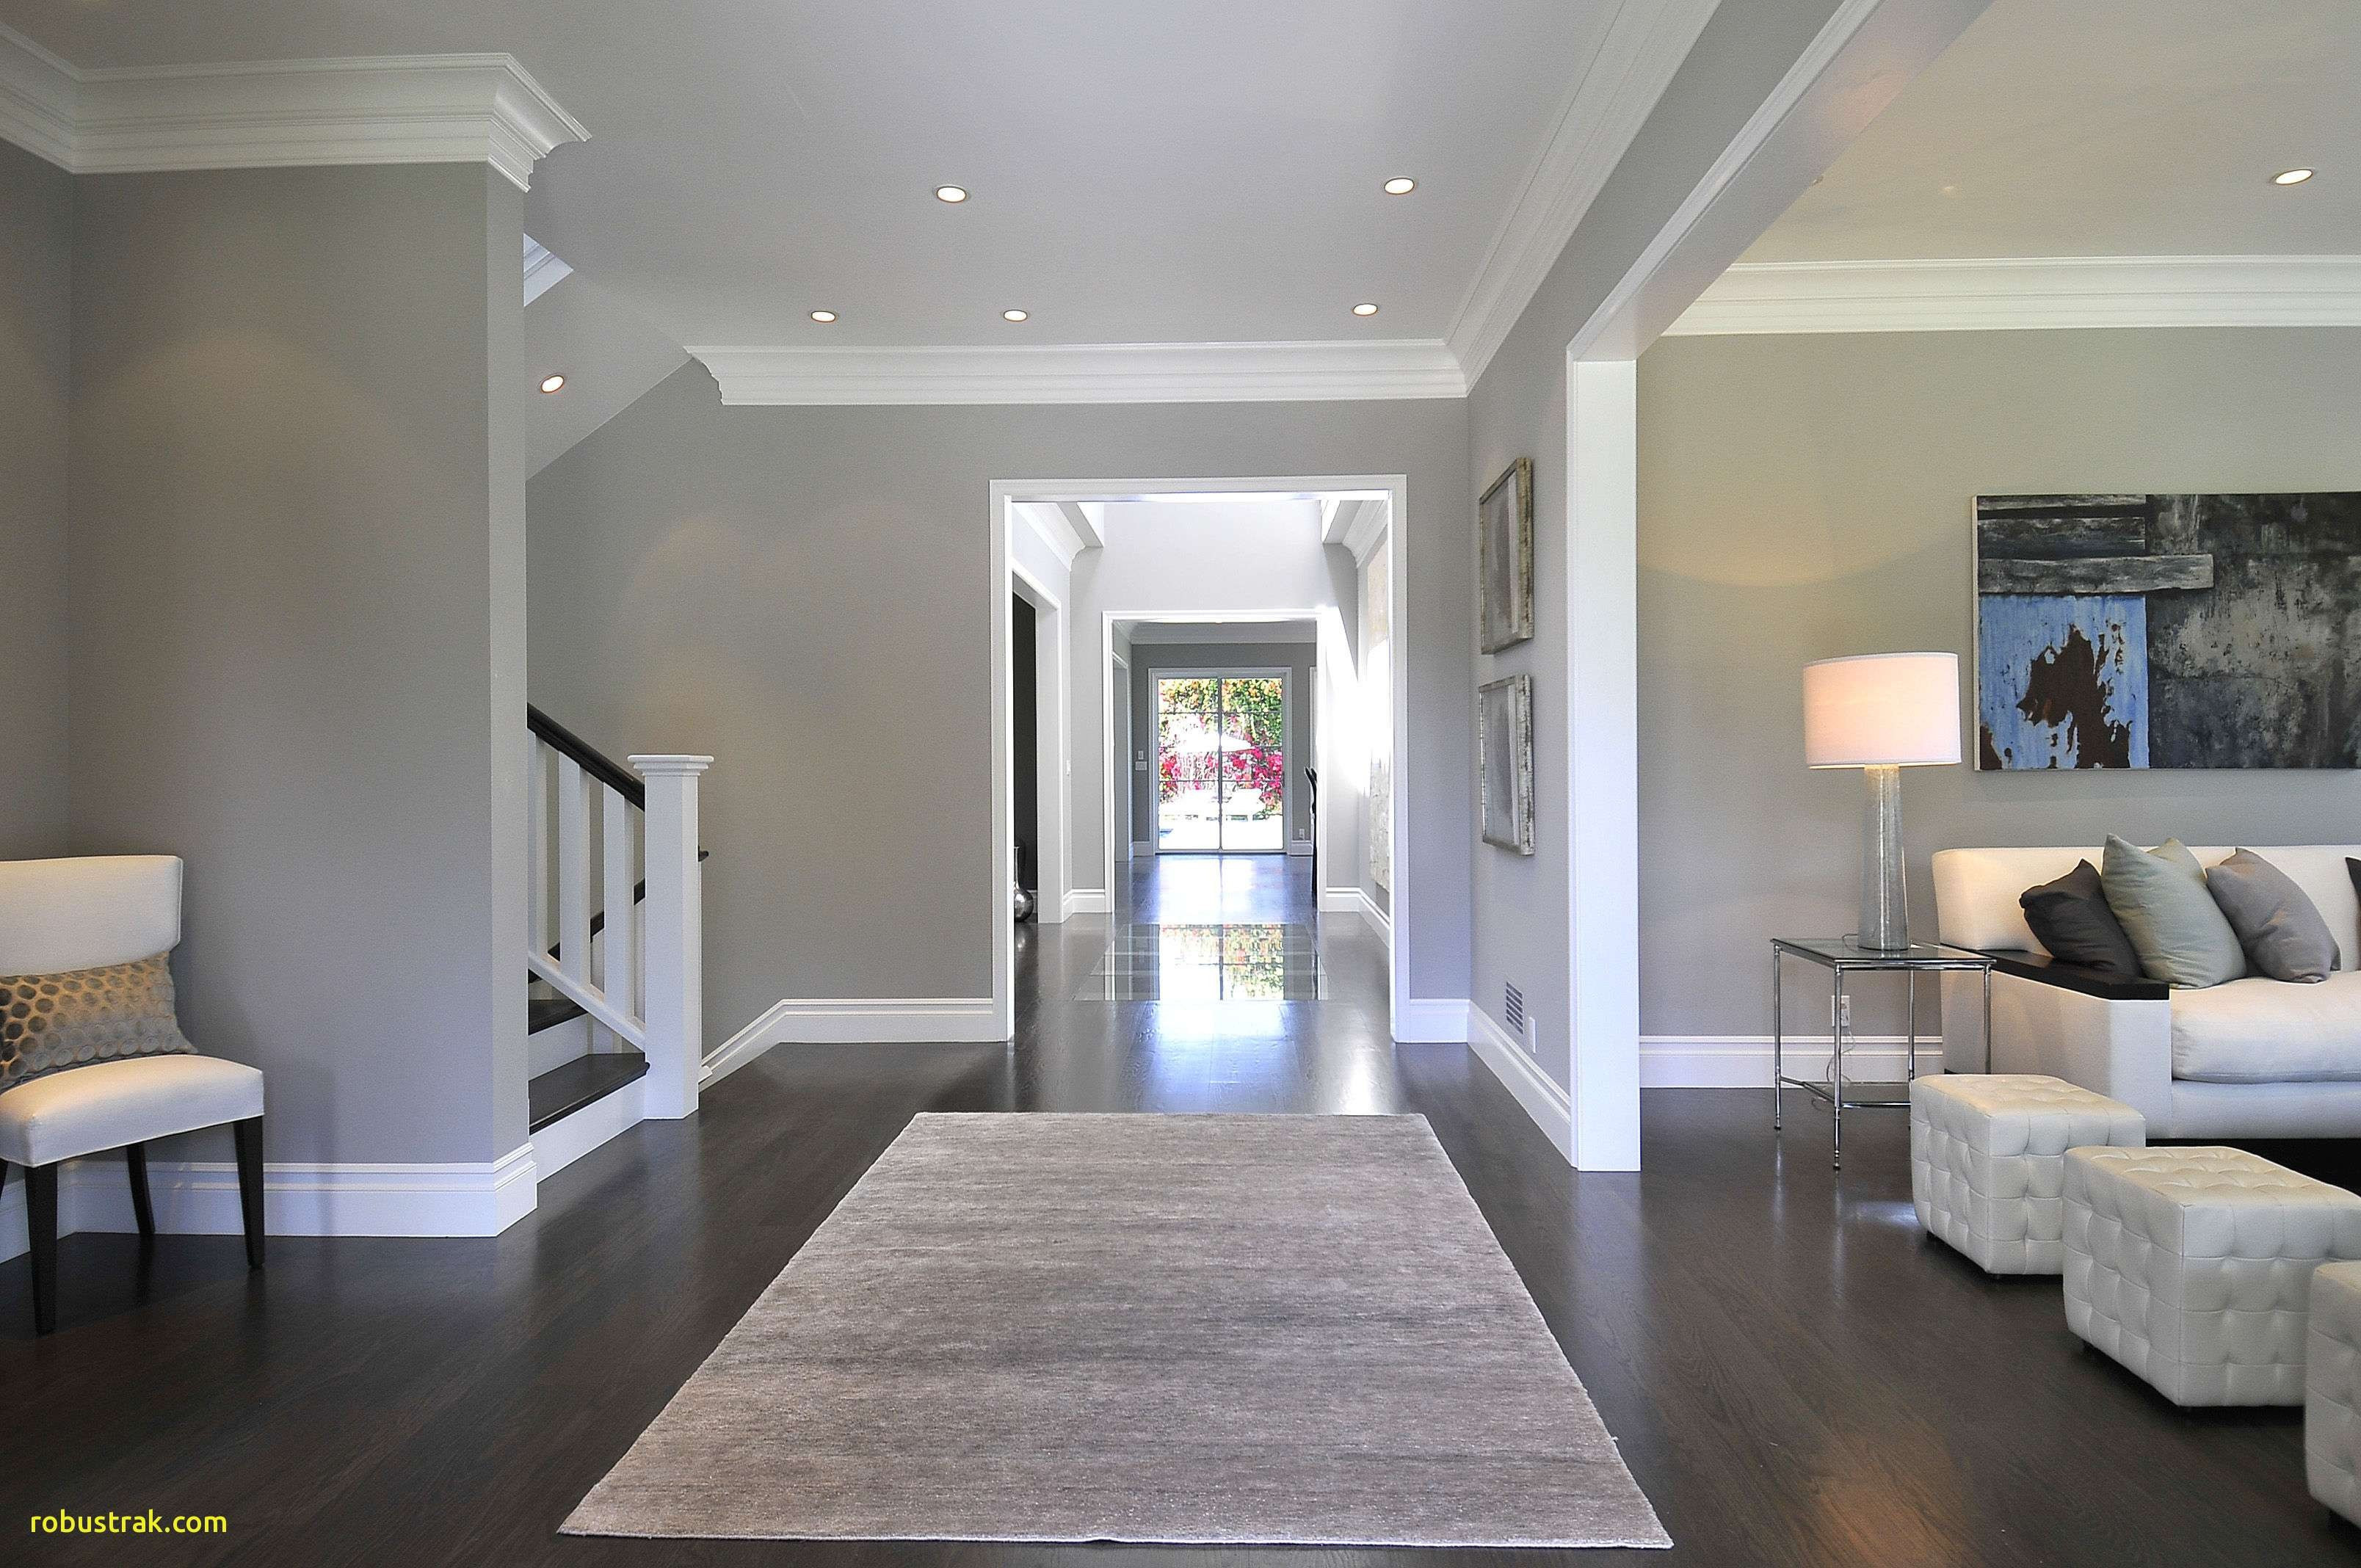 hardwood floor colors images of light gray hardwood floors sweet light wood floor grey walls lovely intended for light gray hardwood floors sweet light wood floor grey walls lovely rugs for dark hardwood